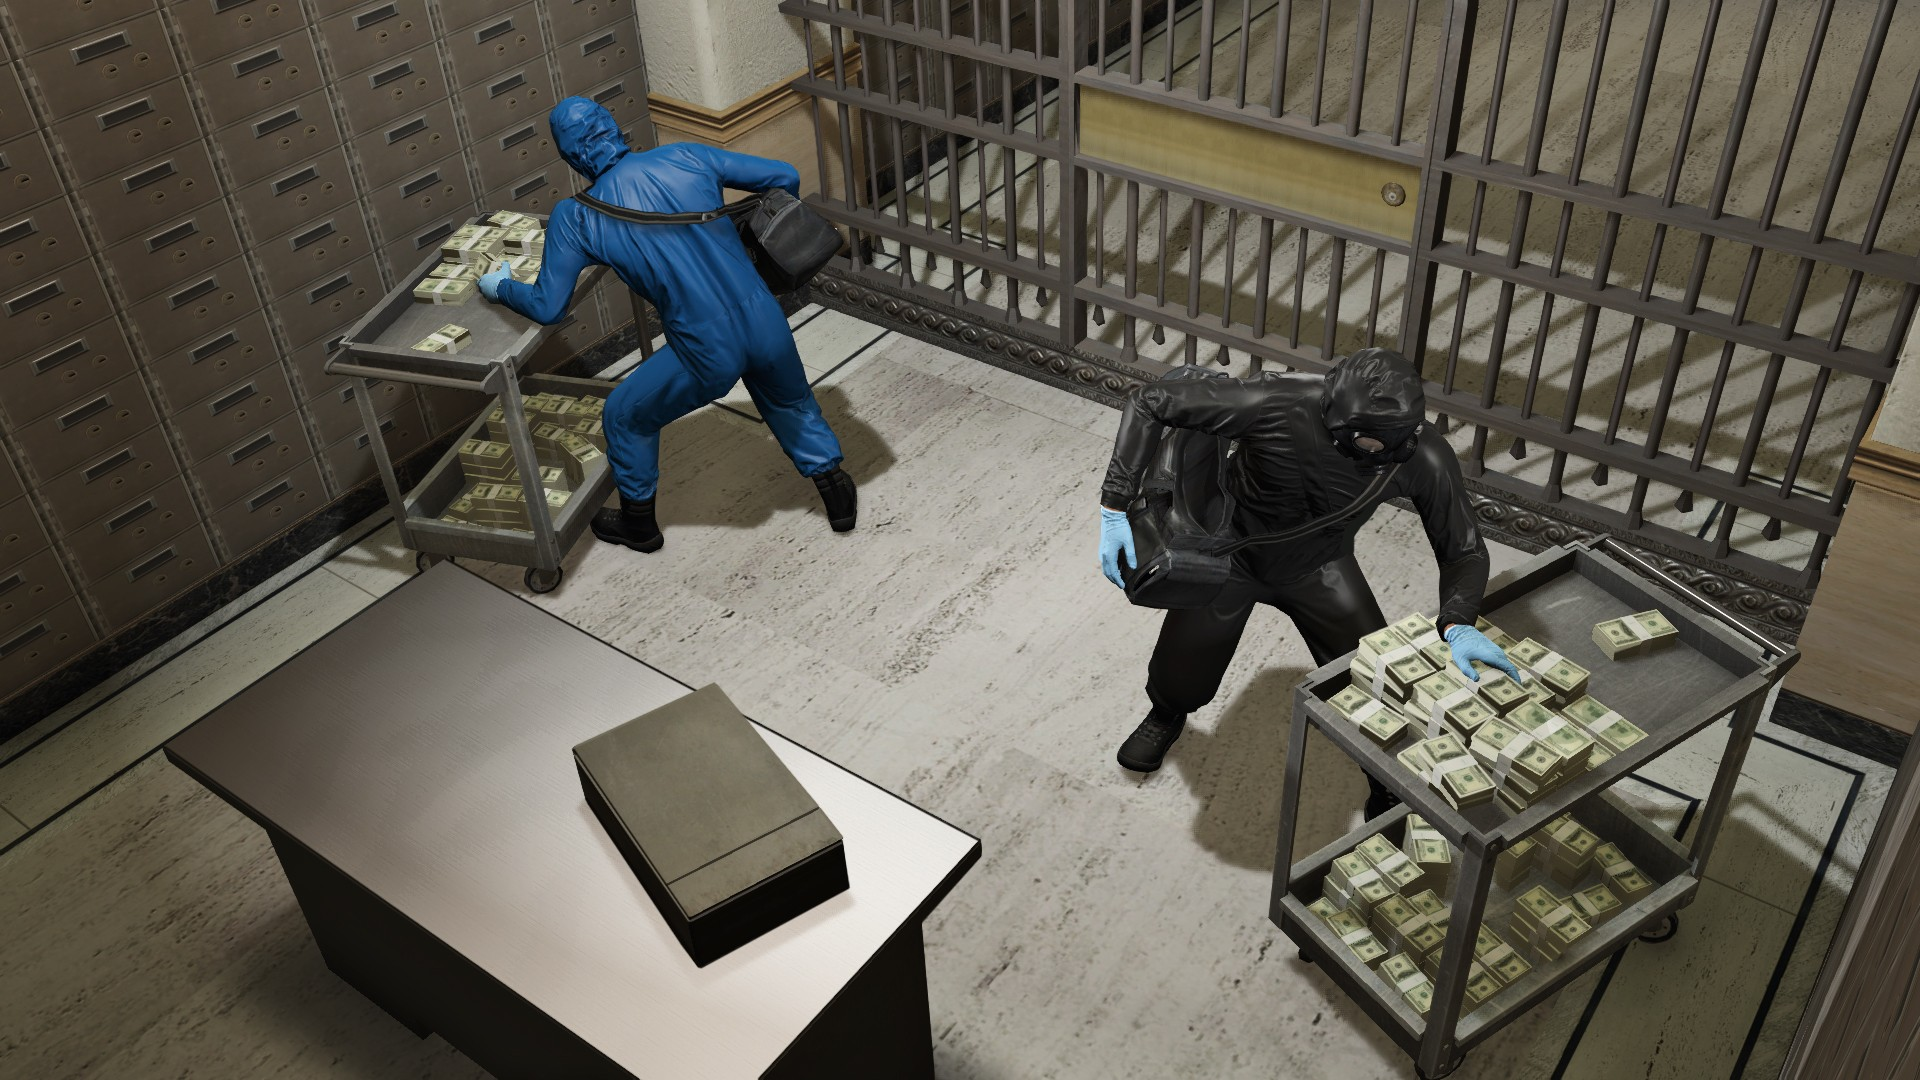 Co-Optimus - News - GTA V Heists Arrive Tomorrow, Data Size